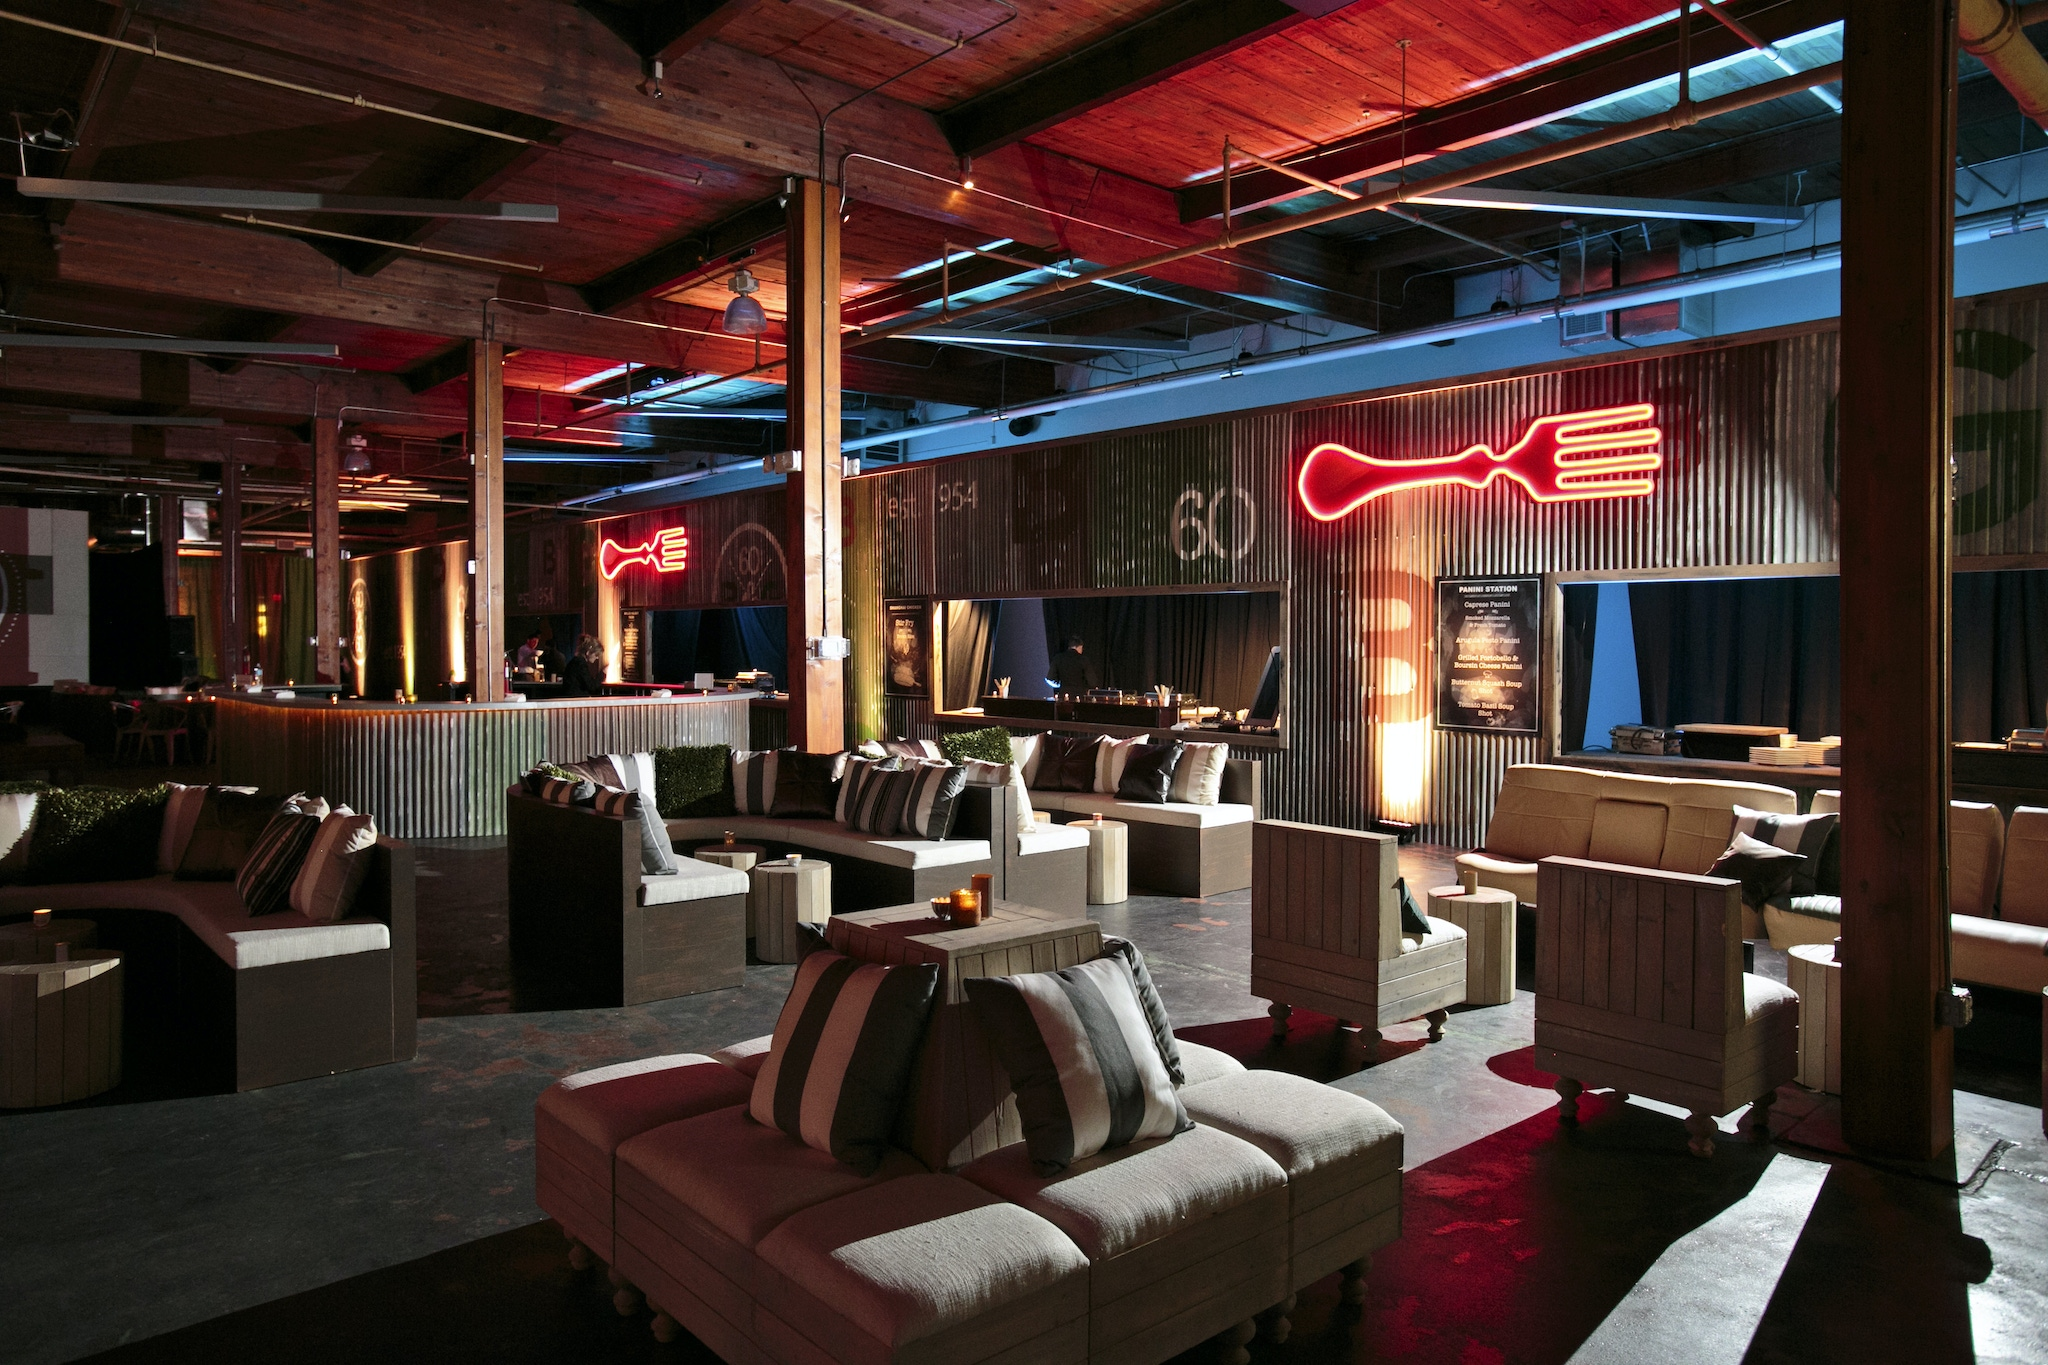 Rustic event space with neon lit decorations in Dallas